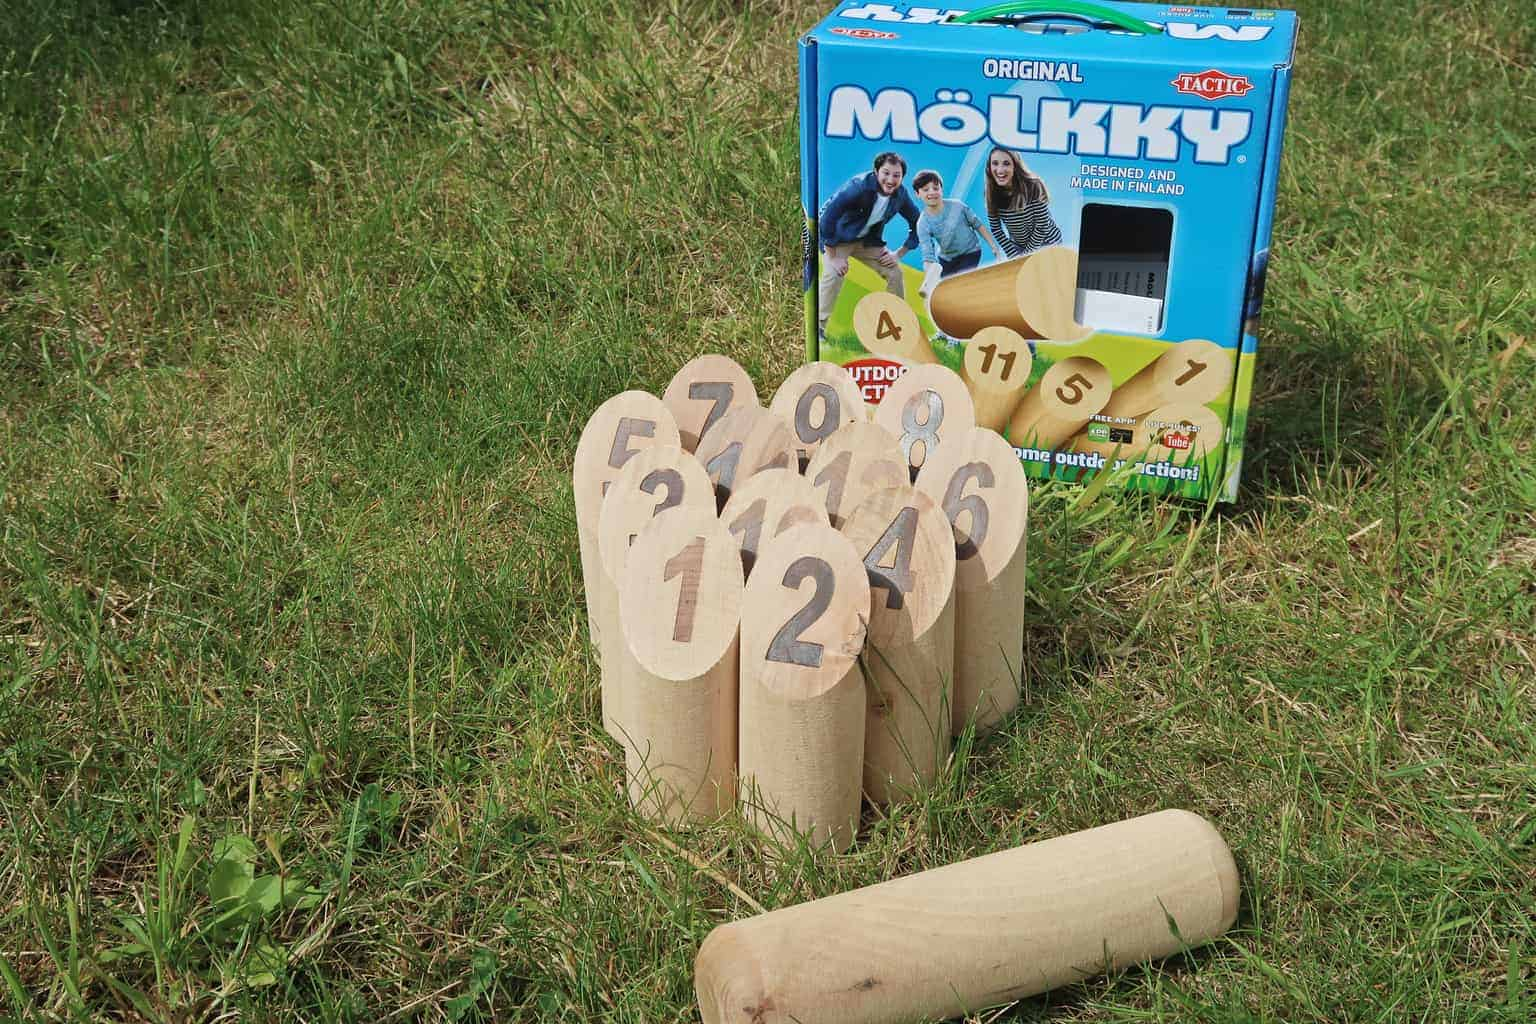 Molkky outdoor skittles game